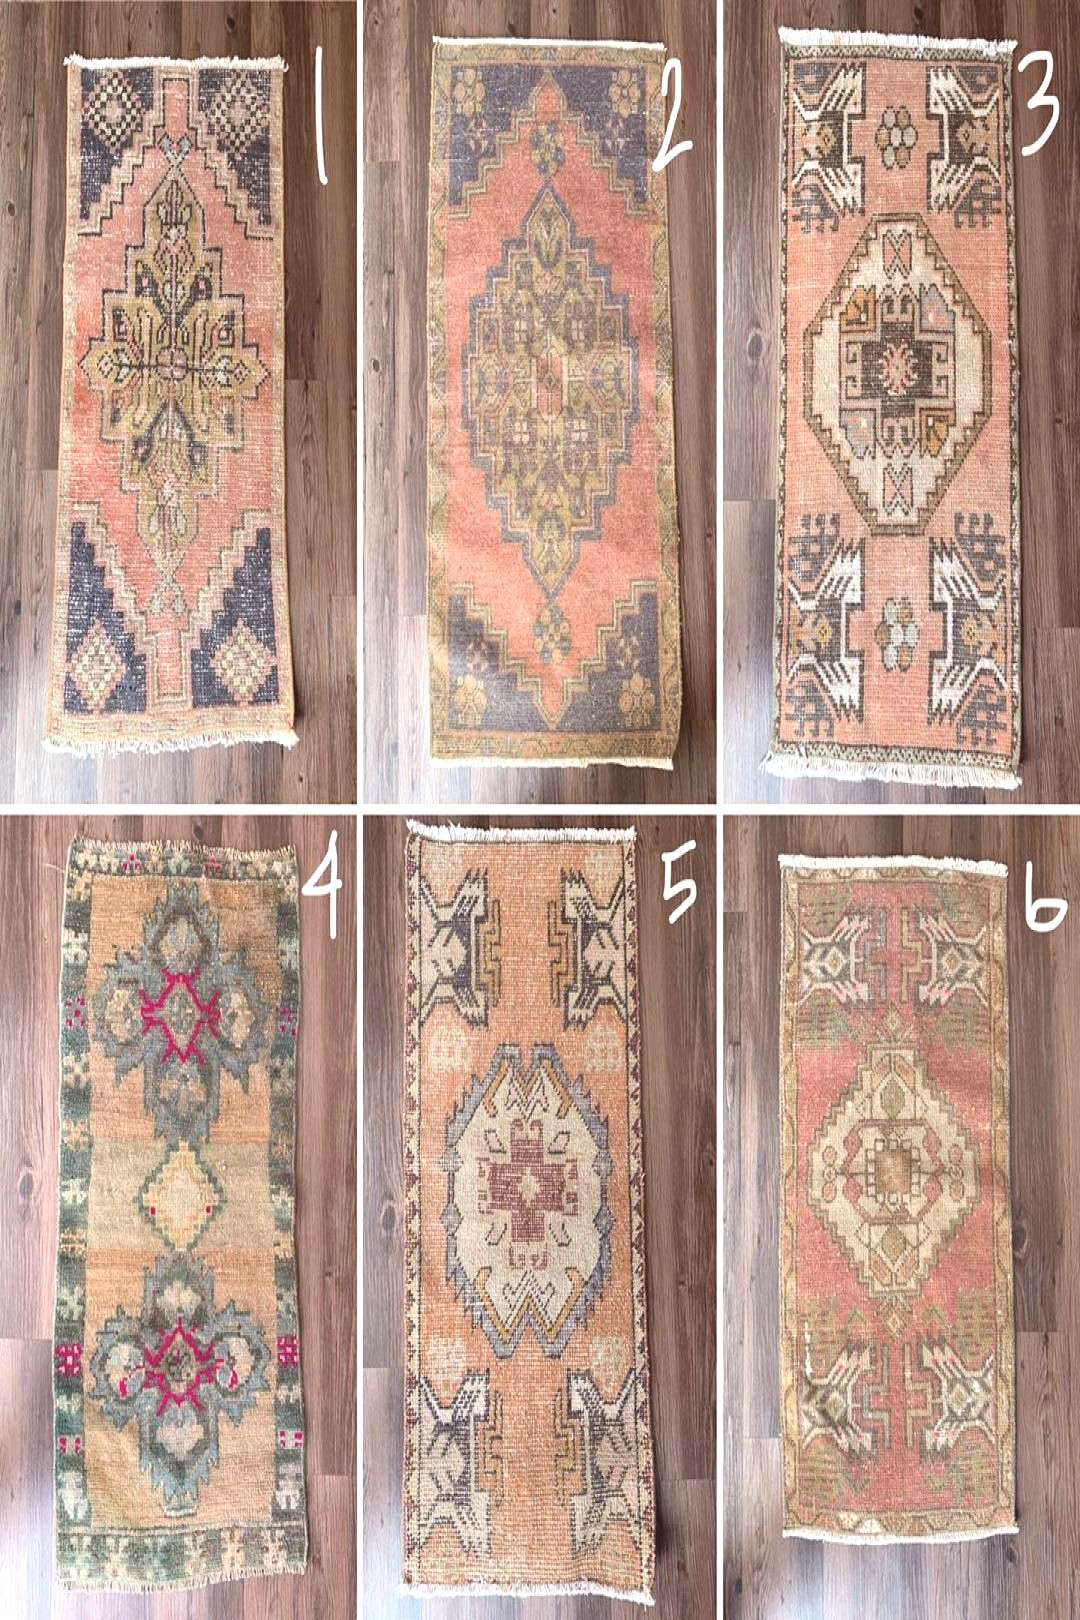 LEAP YEAR Mini Rug $120 each ($10 shipping) 1. 16quotx31quot pink, n